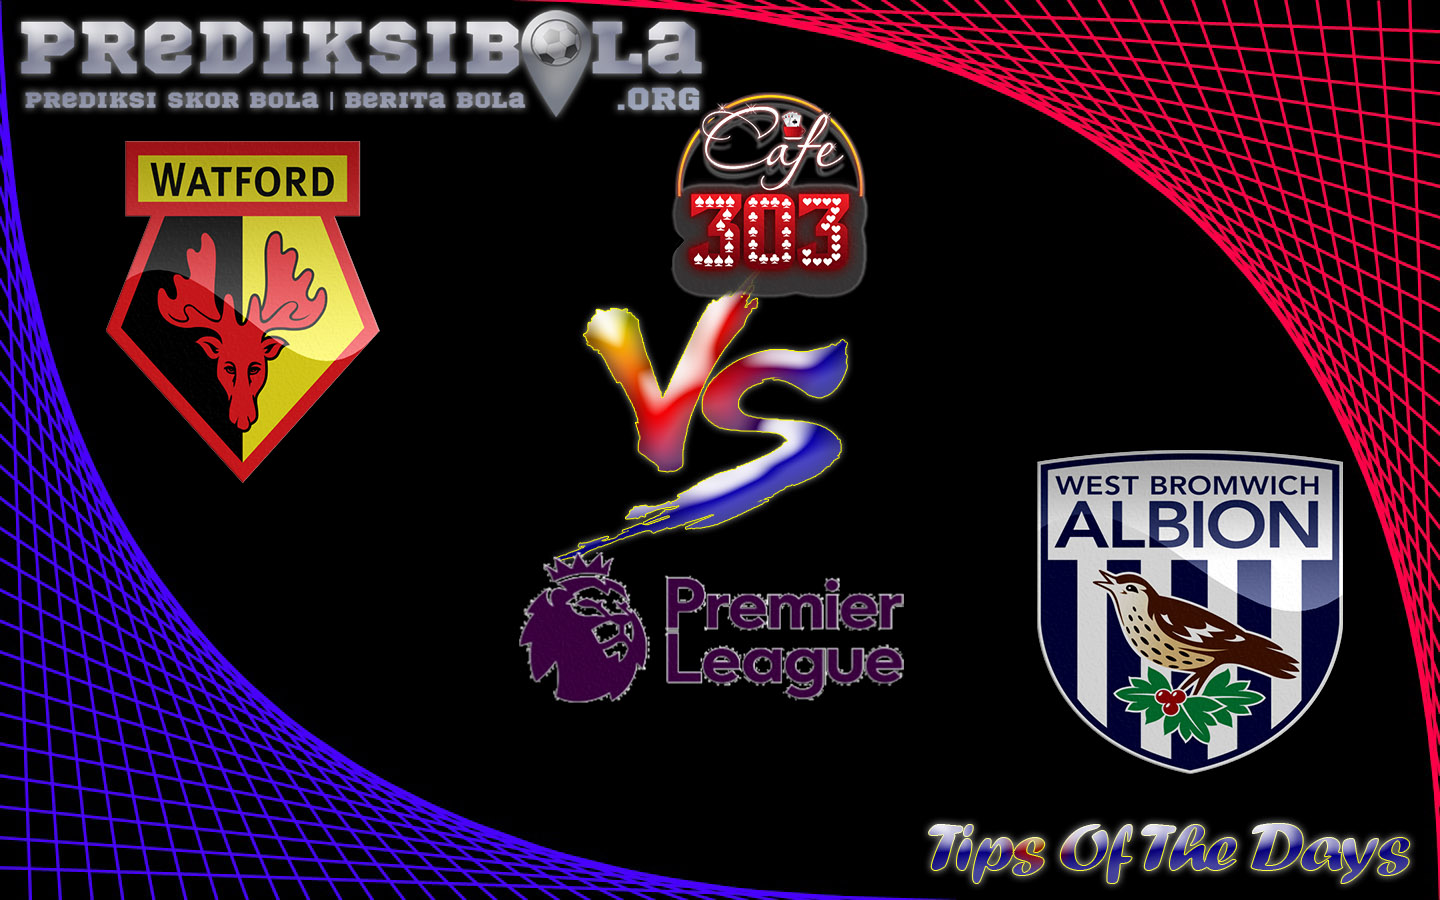 Prediksi Skor Watford Vs West Bromwich Albion 5 April 2017